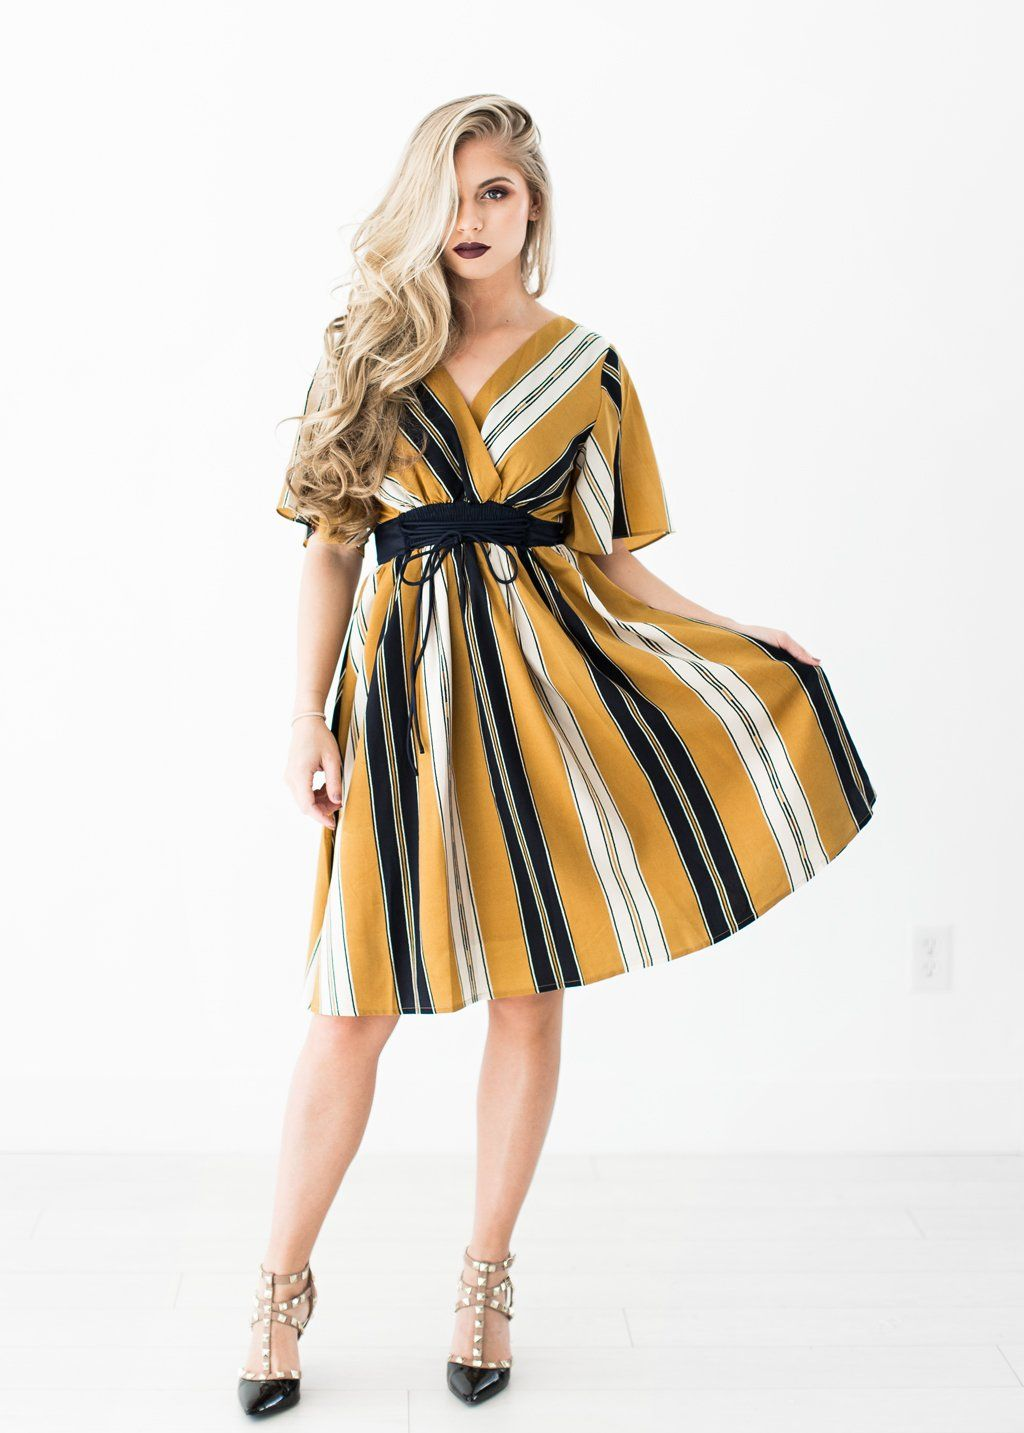 Charleston Yellow Dress, new years eve, holiday outfit